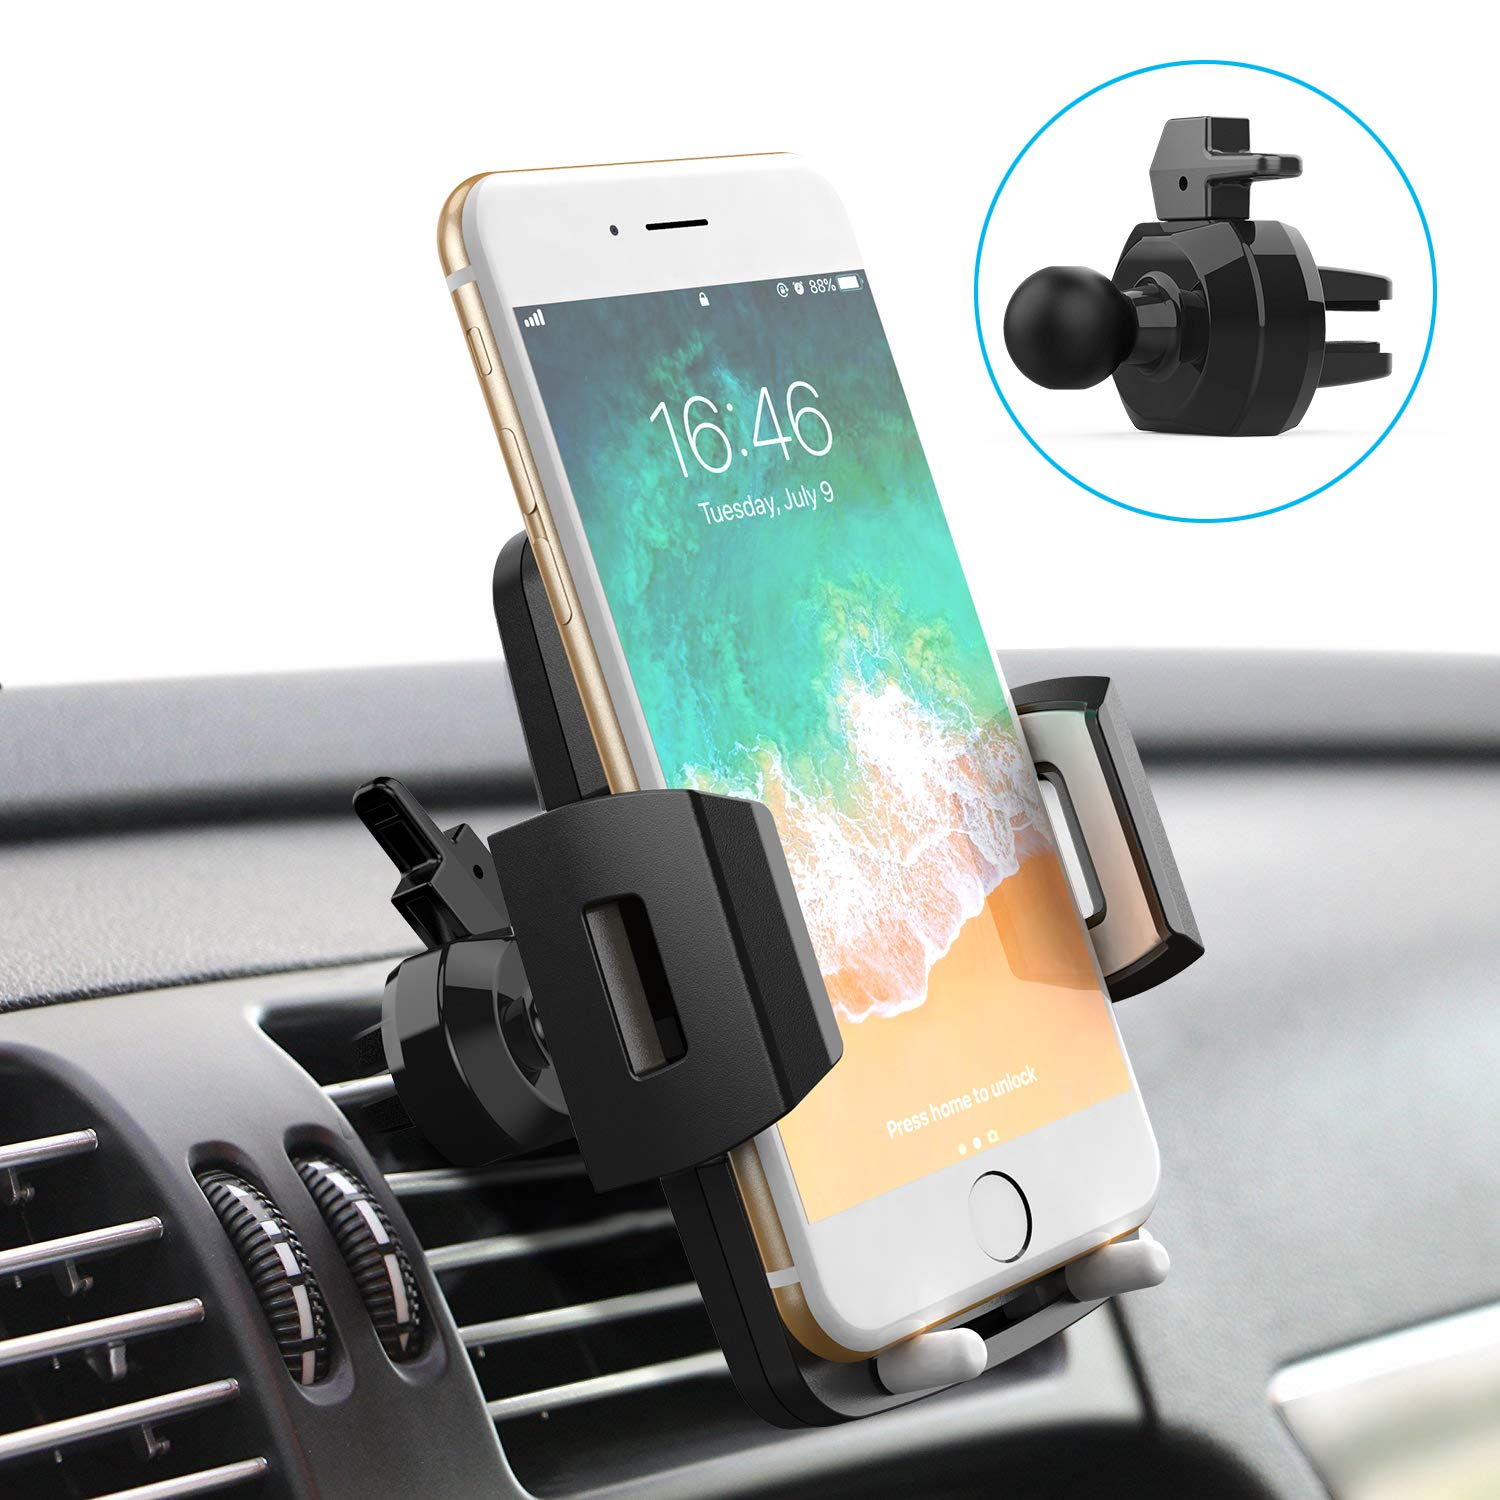 Quntis Cell Phone Holder for Car, Universal Car Holder Phone Mount, Car Air Vent Stand Cradle 360 Rotation Compatible with iPhone Xs XR X 8 7 6 Plus Samsung S10 S9 S8 Plus LG Motorola Pixel Nexus by Quntis